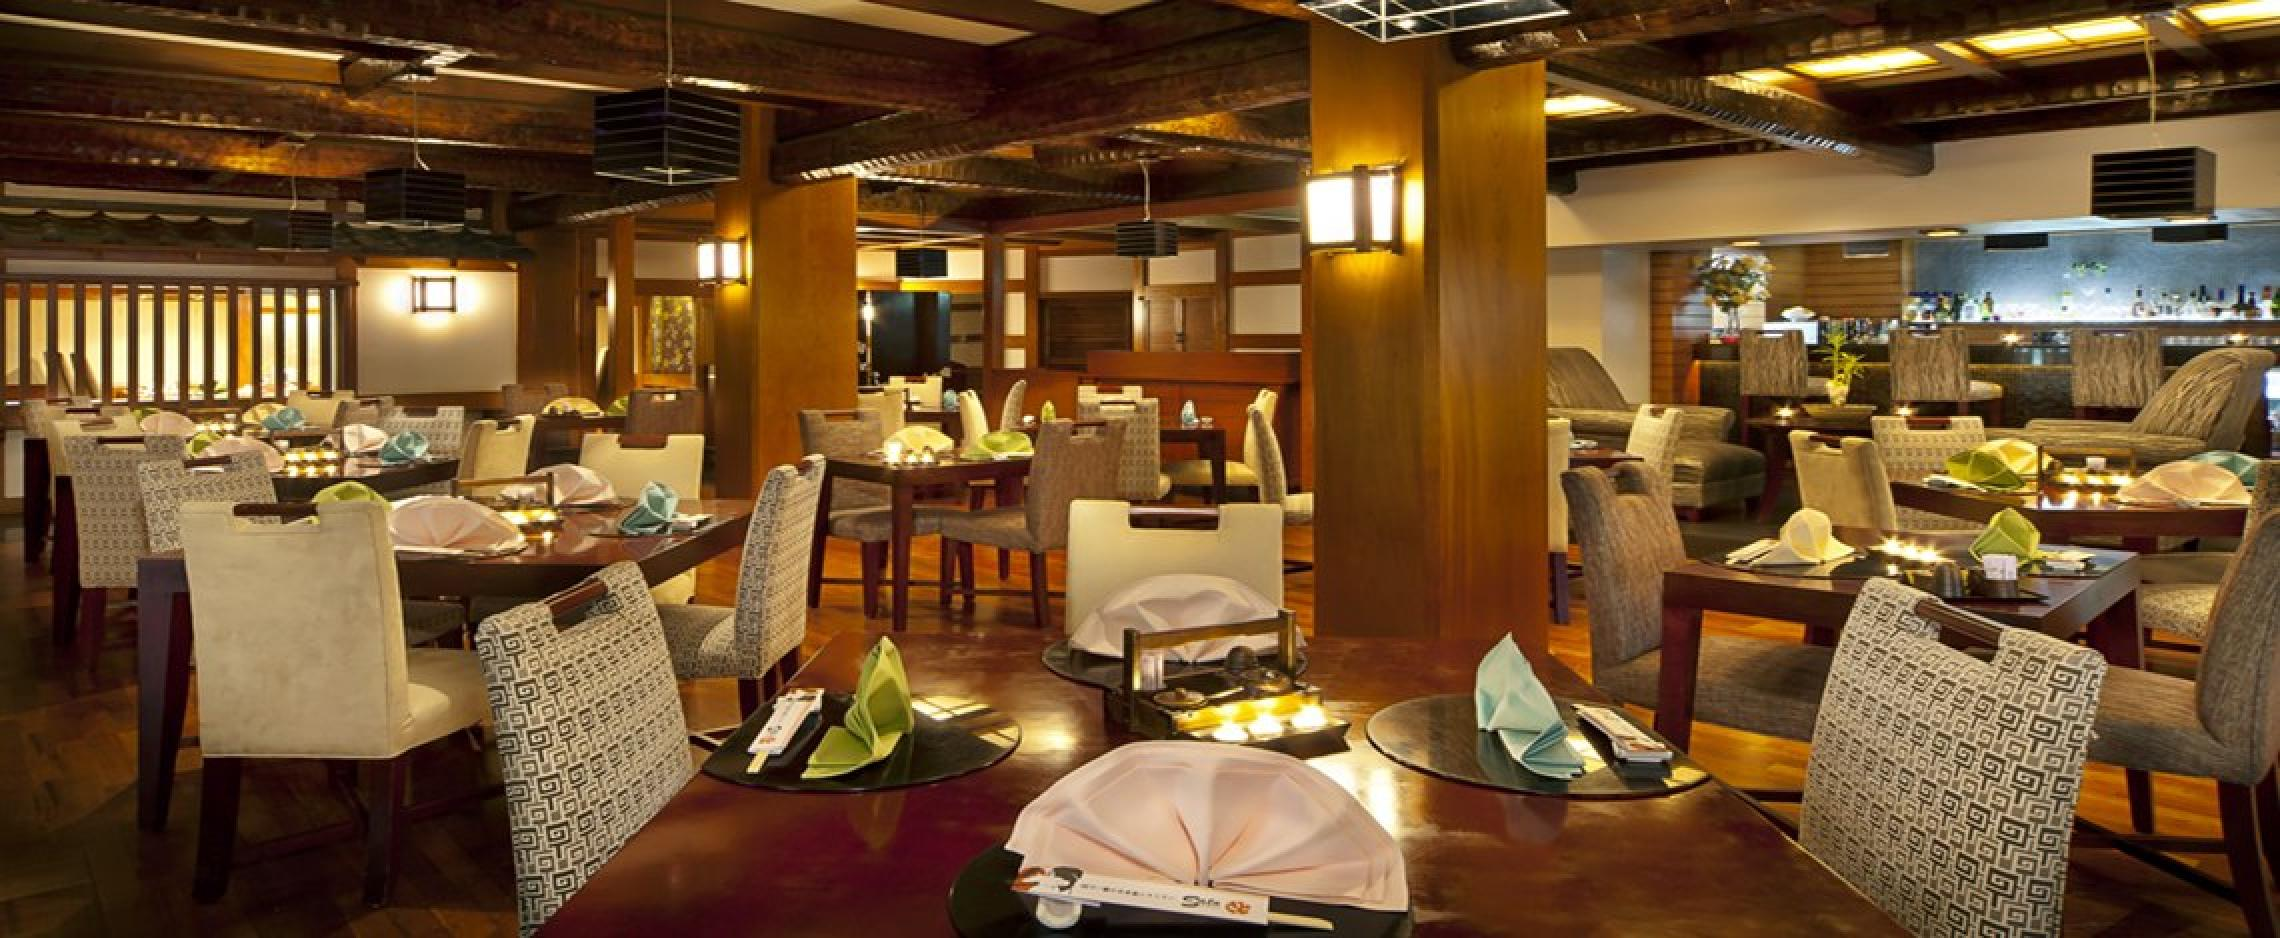 Sato luxury 5 star accomodation in bahrain the gulf for Asian cuisine catering